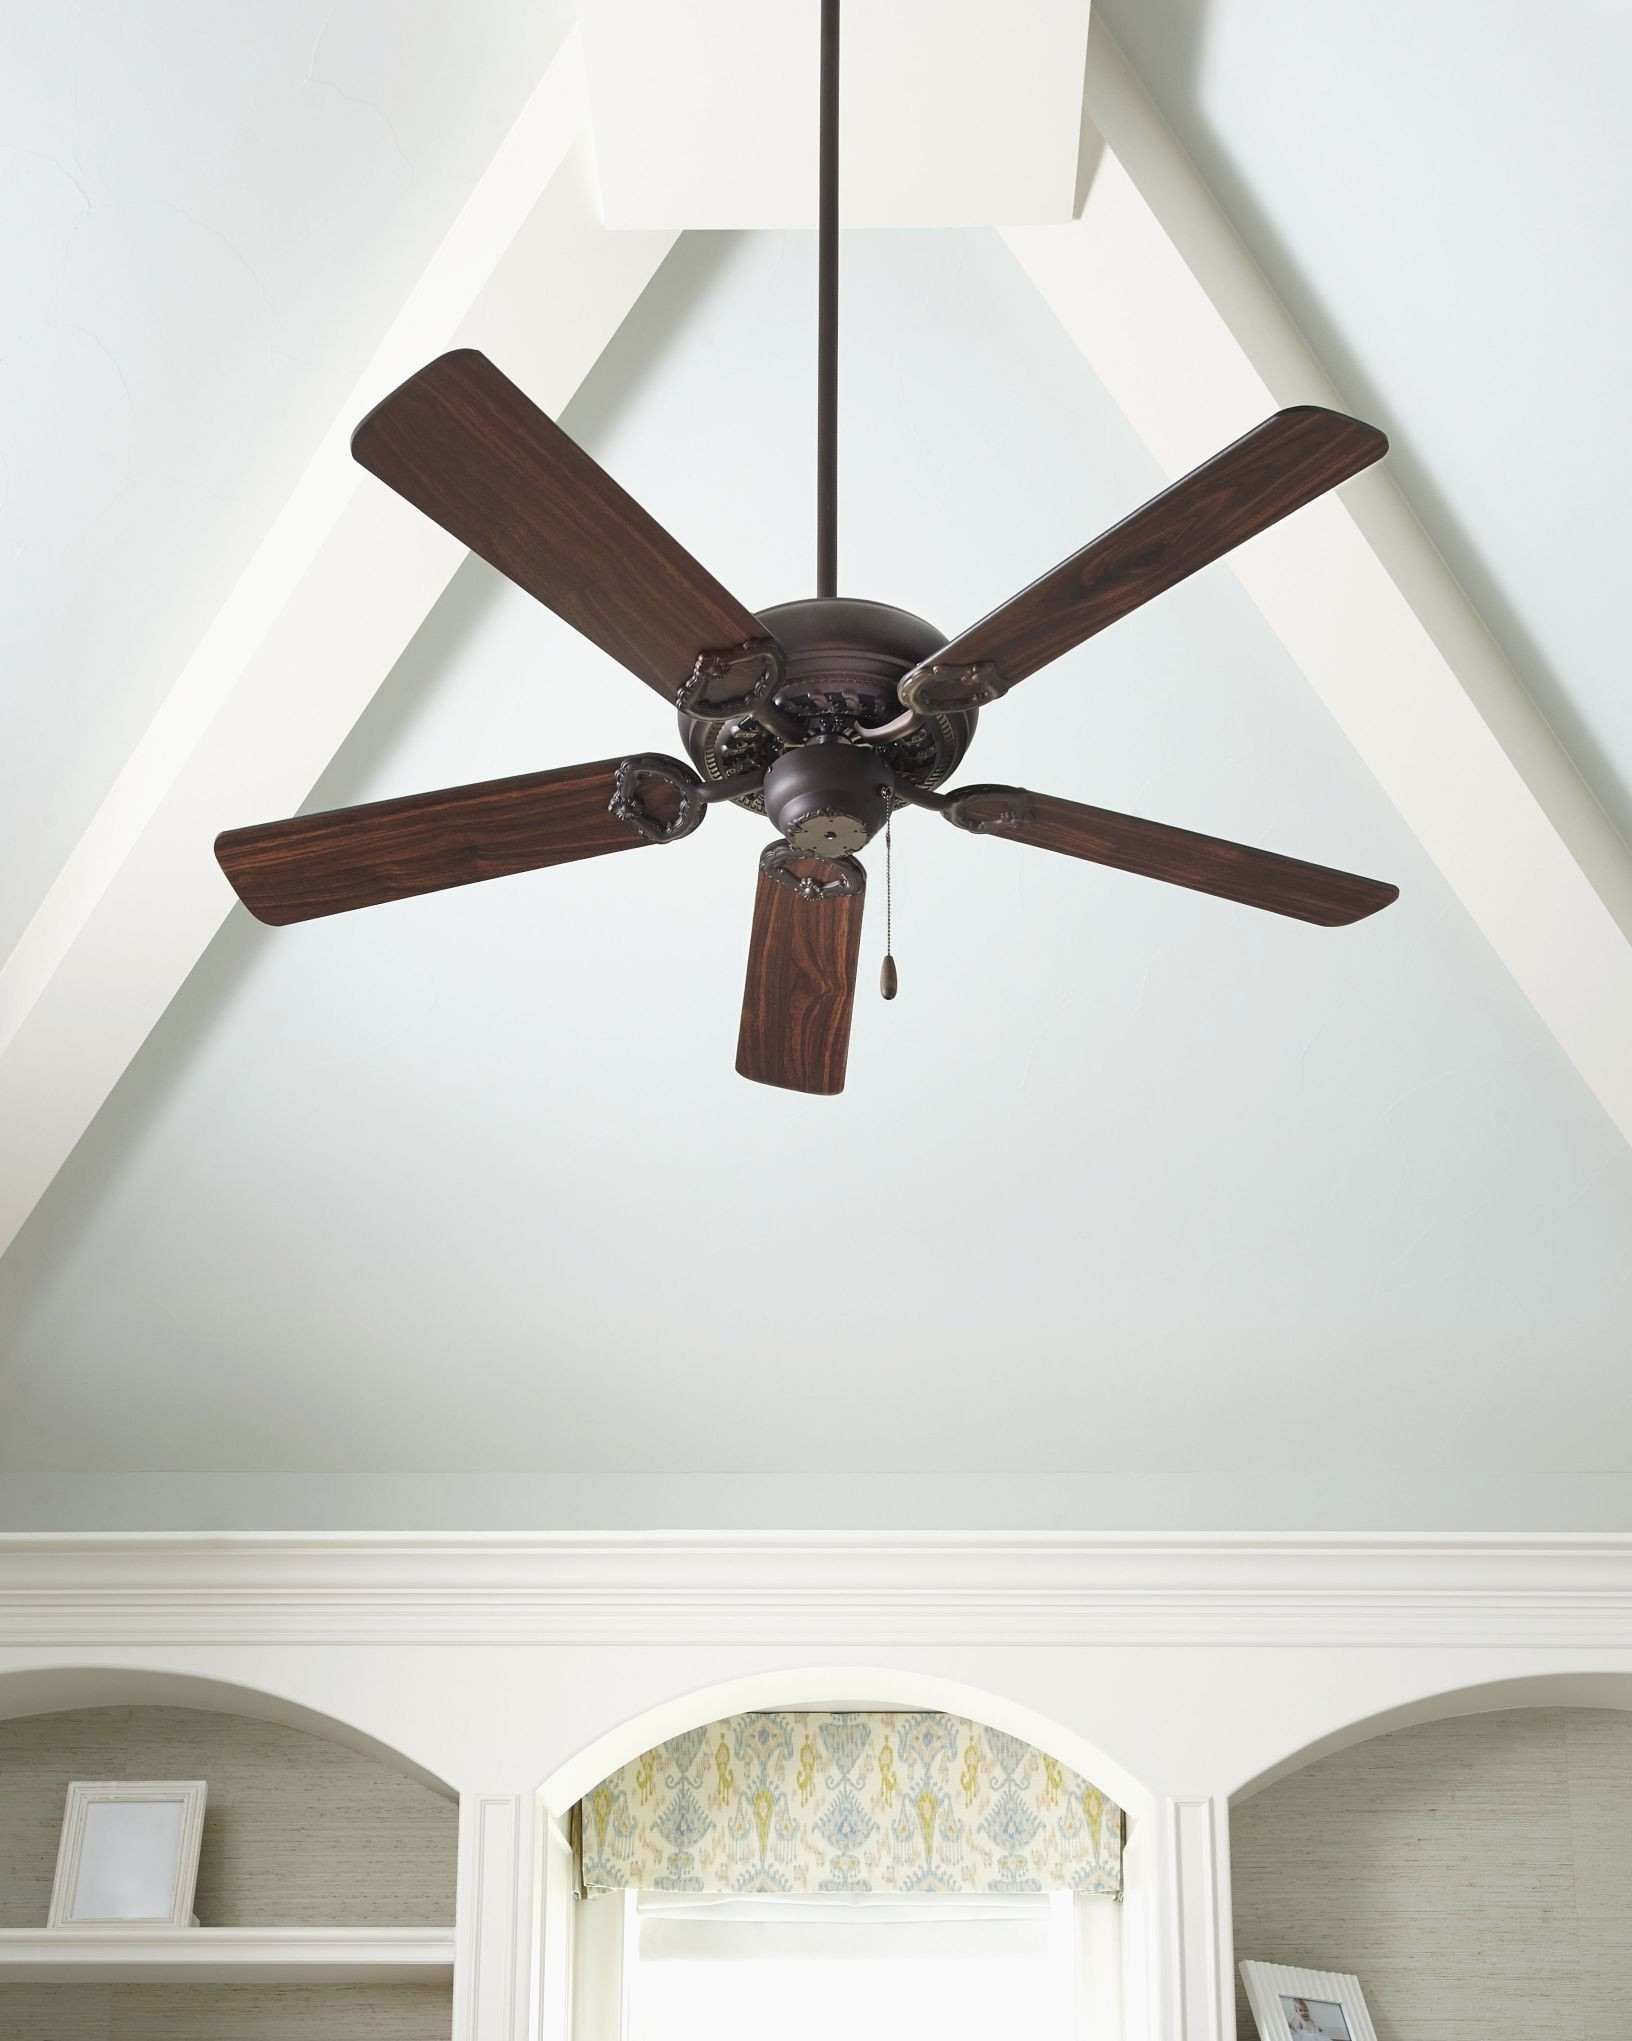 Most Recently Released Indoor Pottery Barn Ceiling Fans With Lights Perfect Quorum With Regard To Outdoor Ceiling Fans For Barns (View 11 of 20)